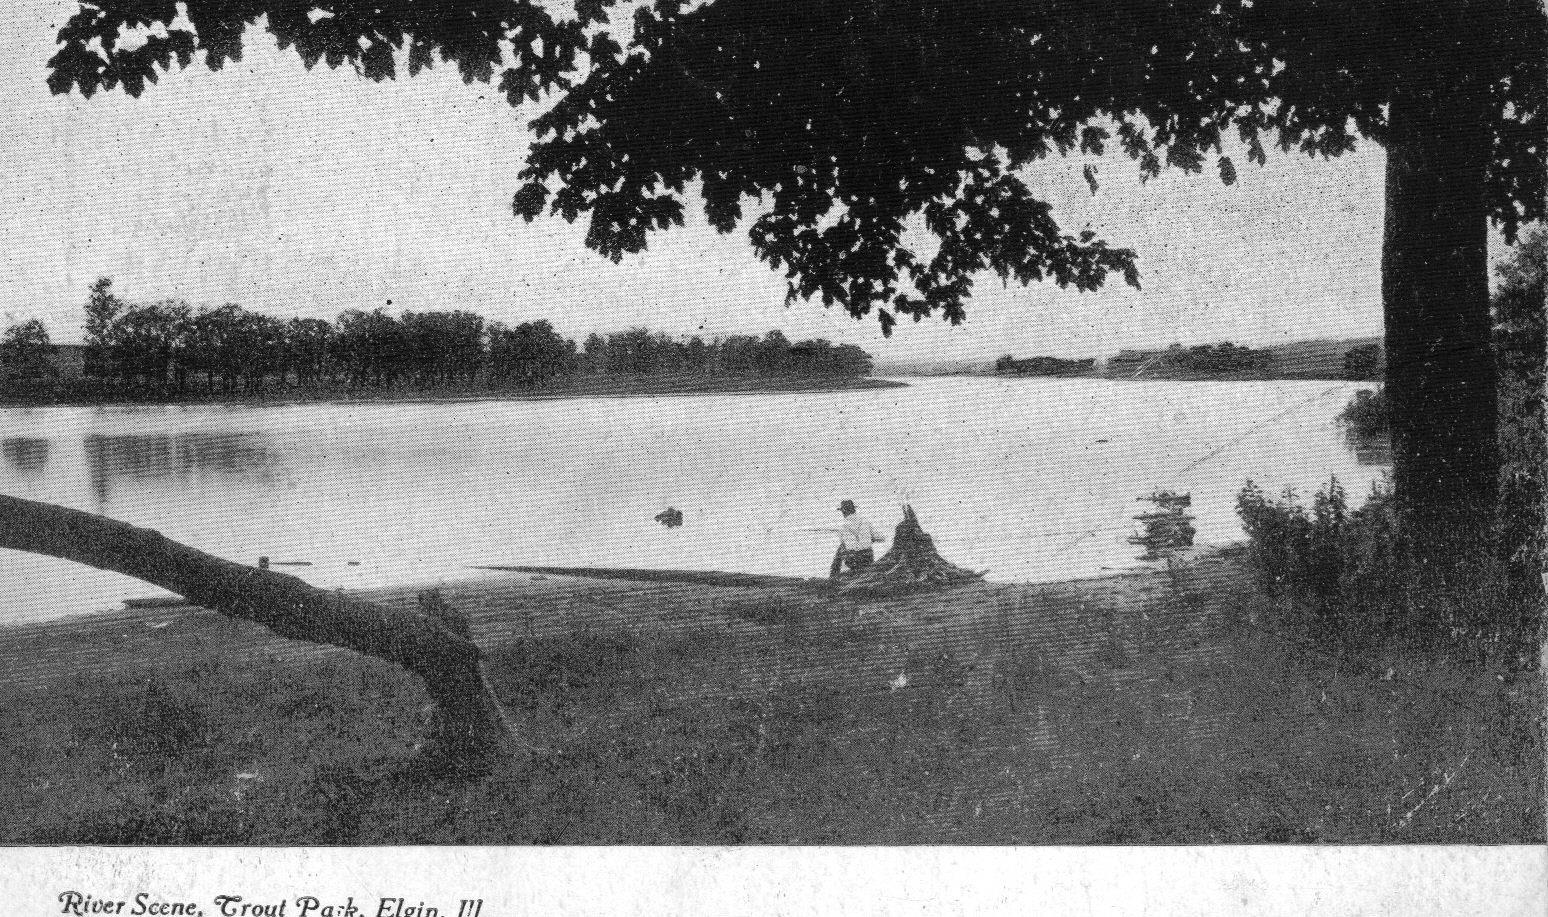 Trout-Park-and-Fox-River-1909.jpg